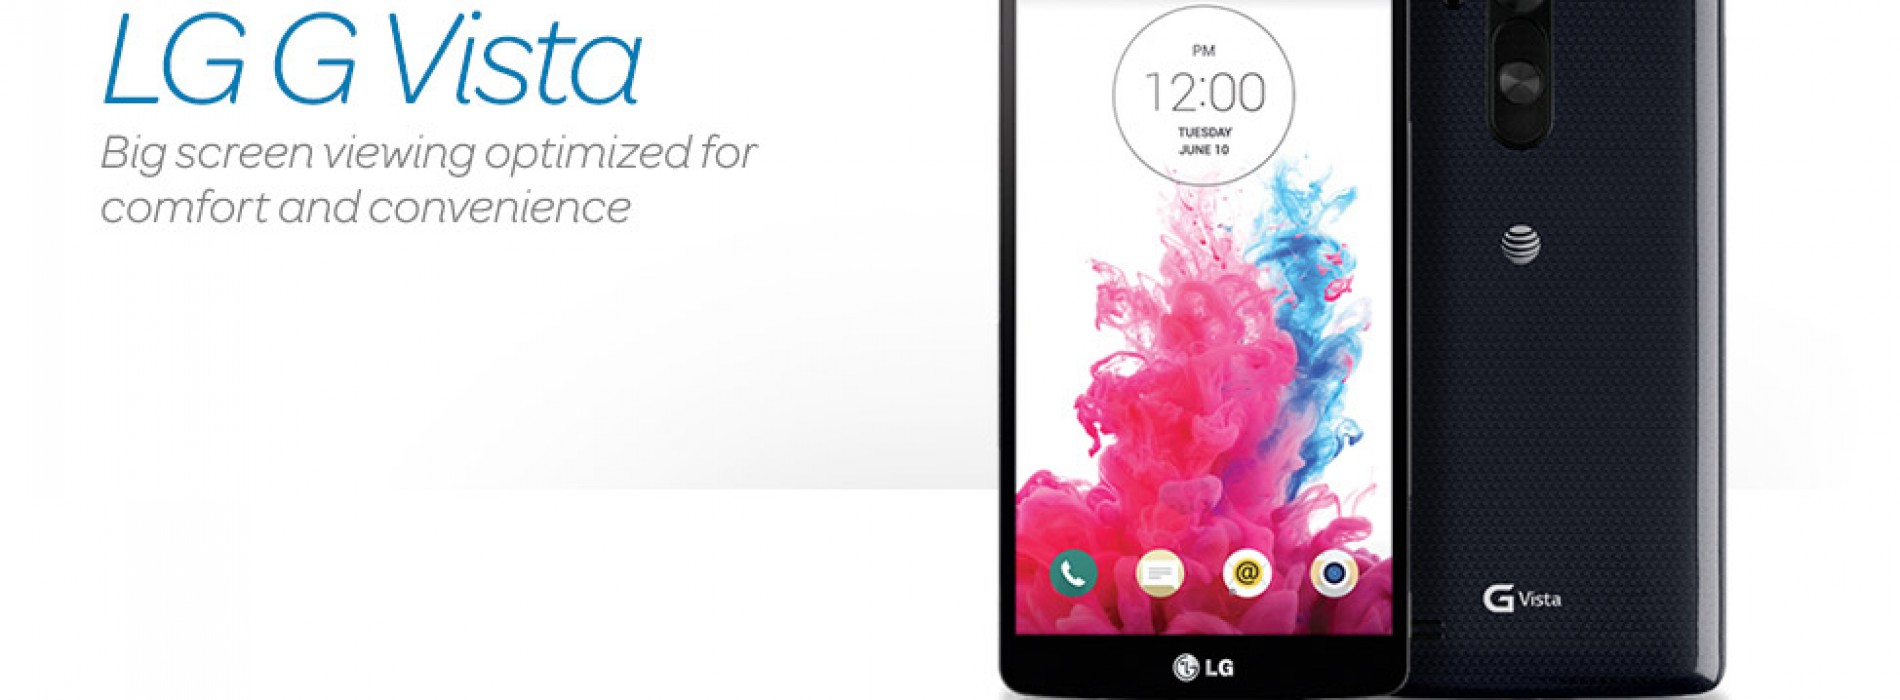 AT&T announces LG G Vista for August 22